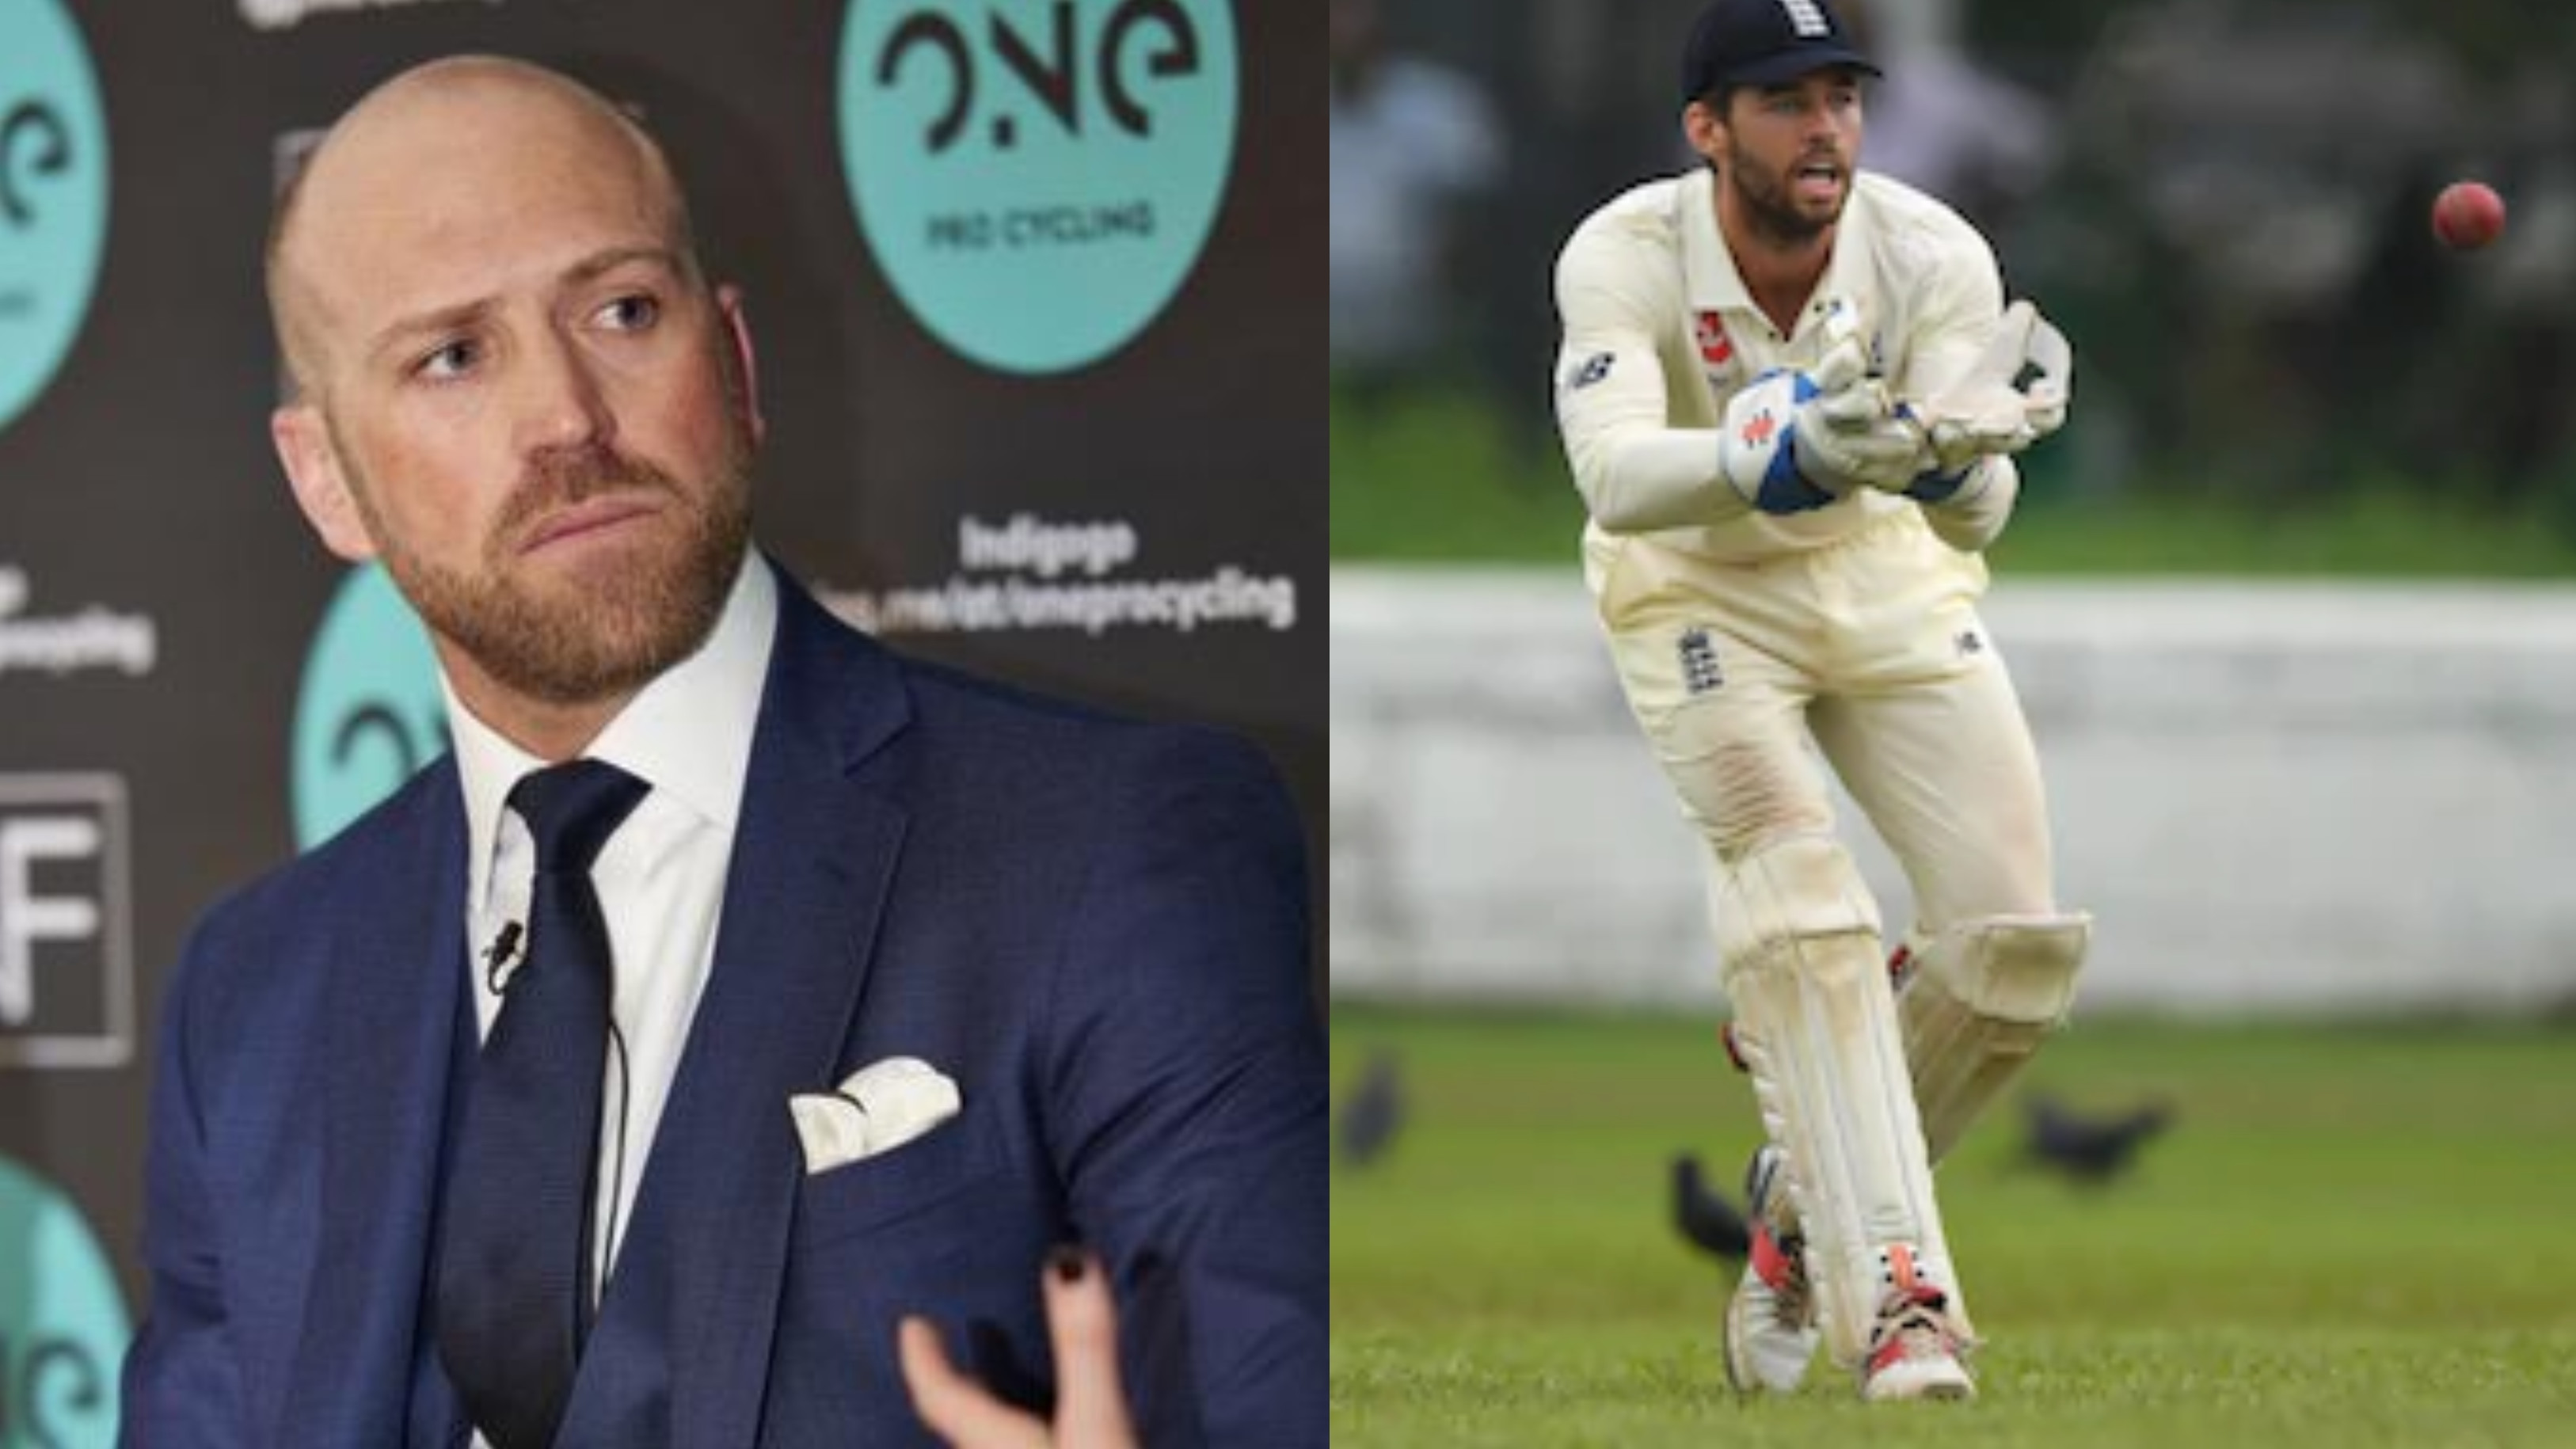 SL v ENG 2018: Ben Foakes' debut show is going to be a selectors' nightmare, says Matt Prior